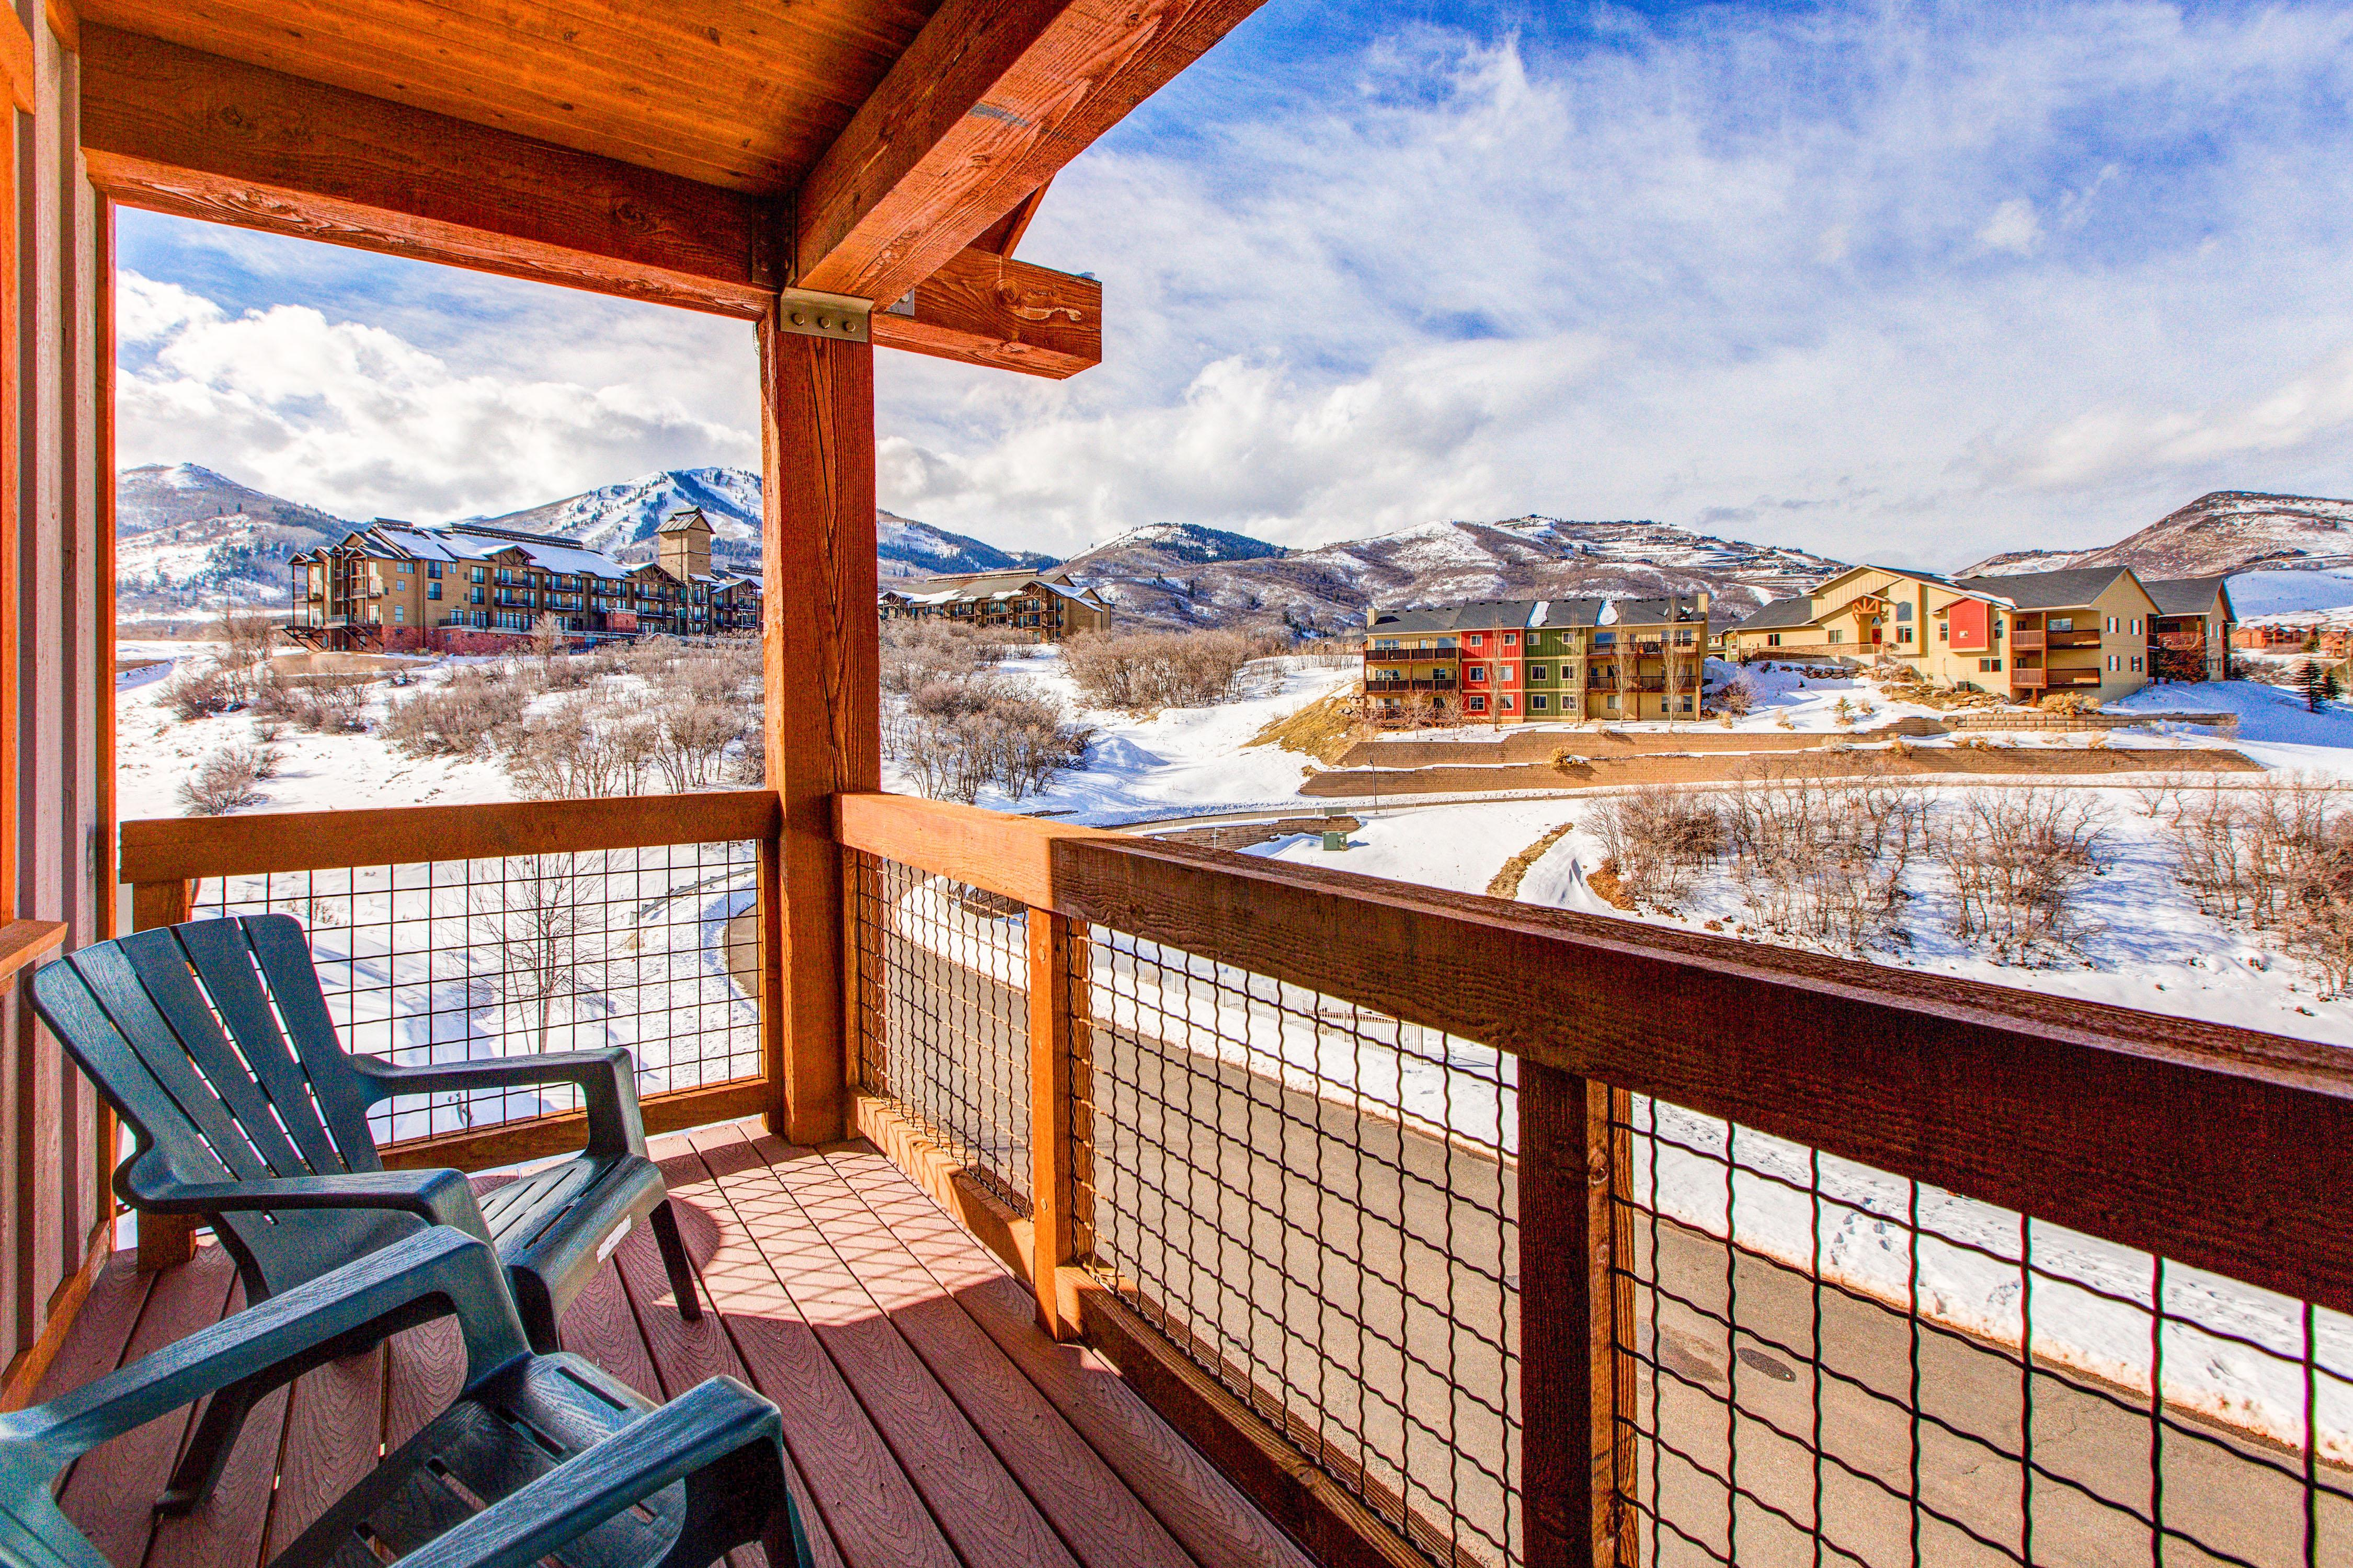 Property Image 1 - Impressive Rustic Mountain Condo with Stunning Slope Views